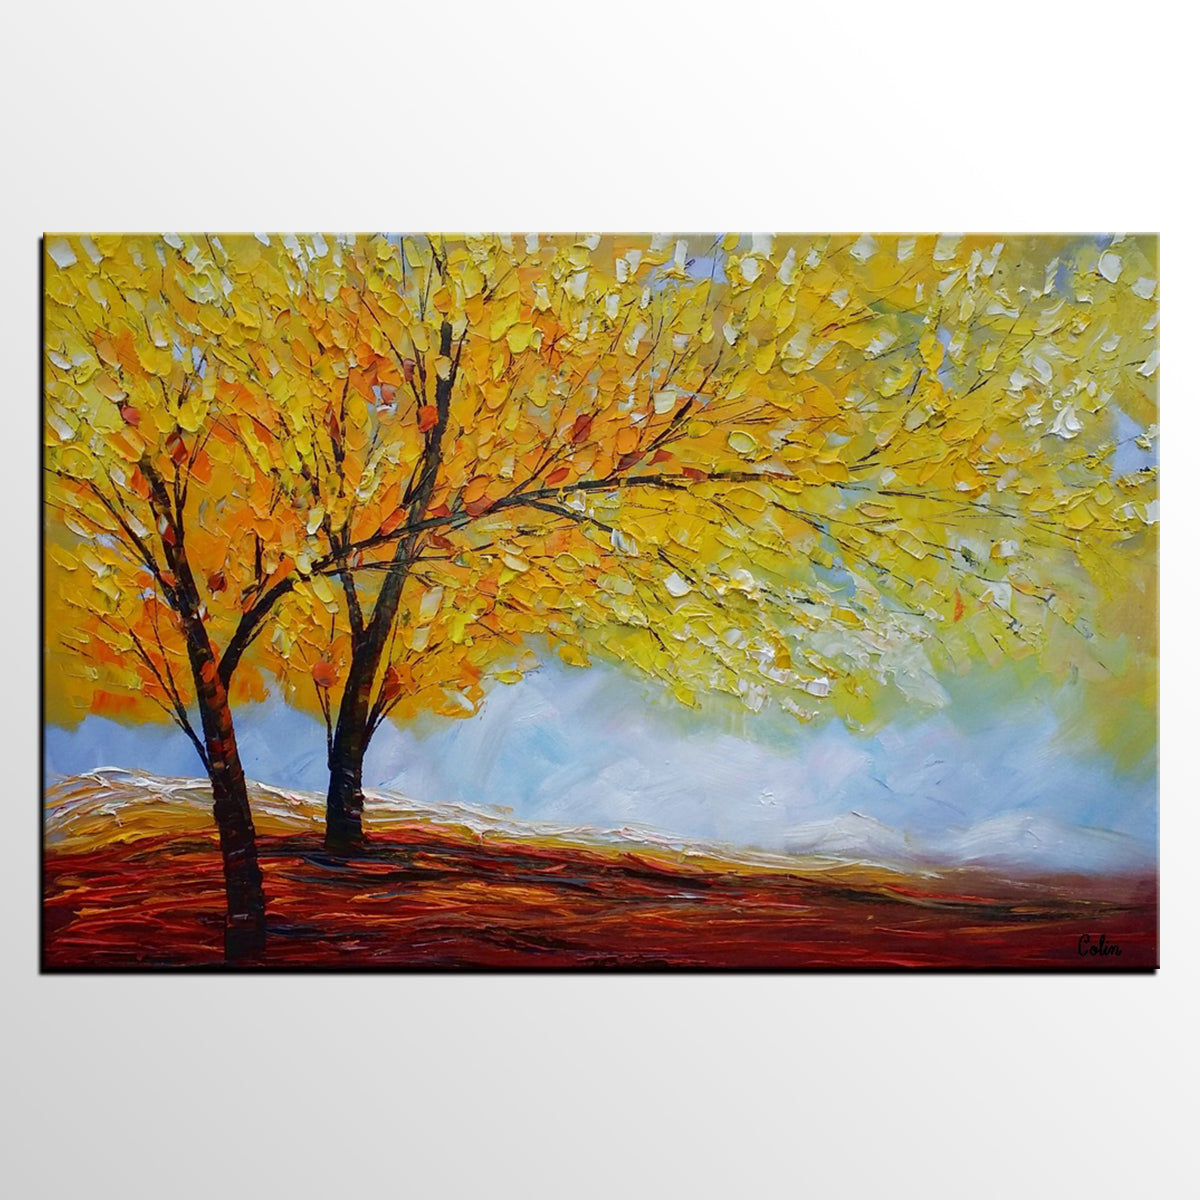 Original Painting Art Painting Autumn Tree Painting Landscape Painting Wall Art Oil Painting Canvas Wall Art Abstract Art Large Art